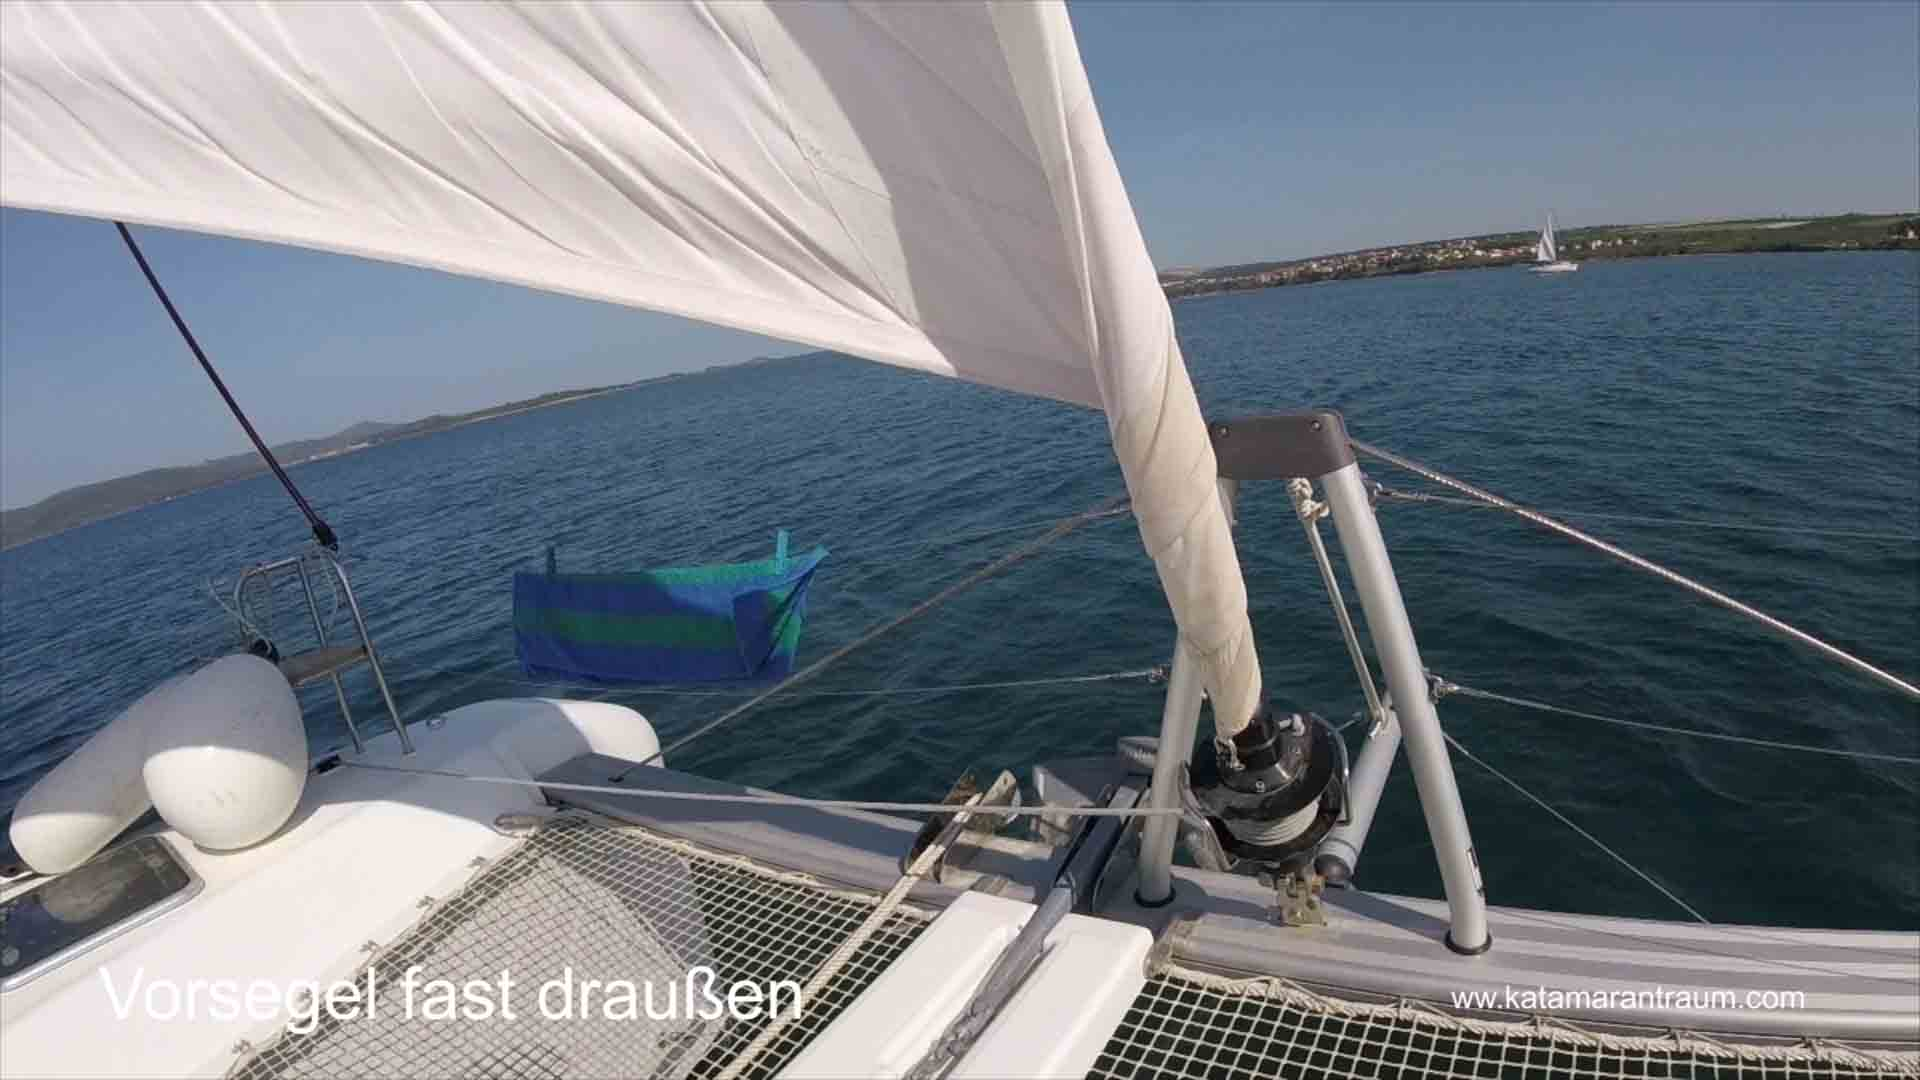 Catamaran maneuver training: Foresasil is almost out